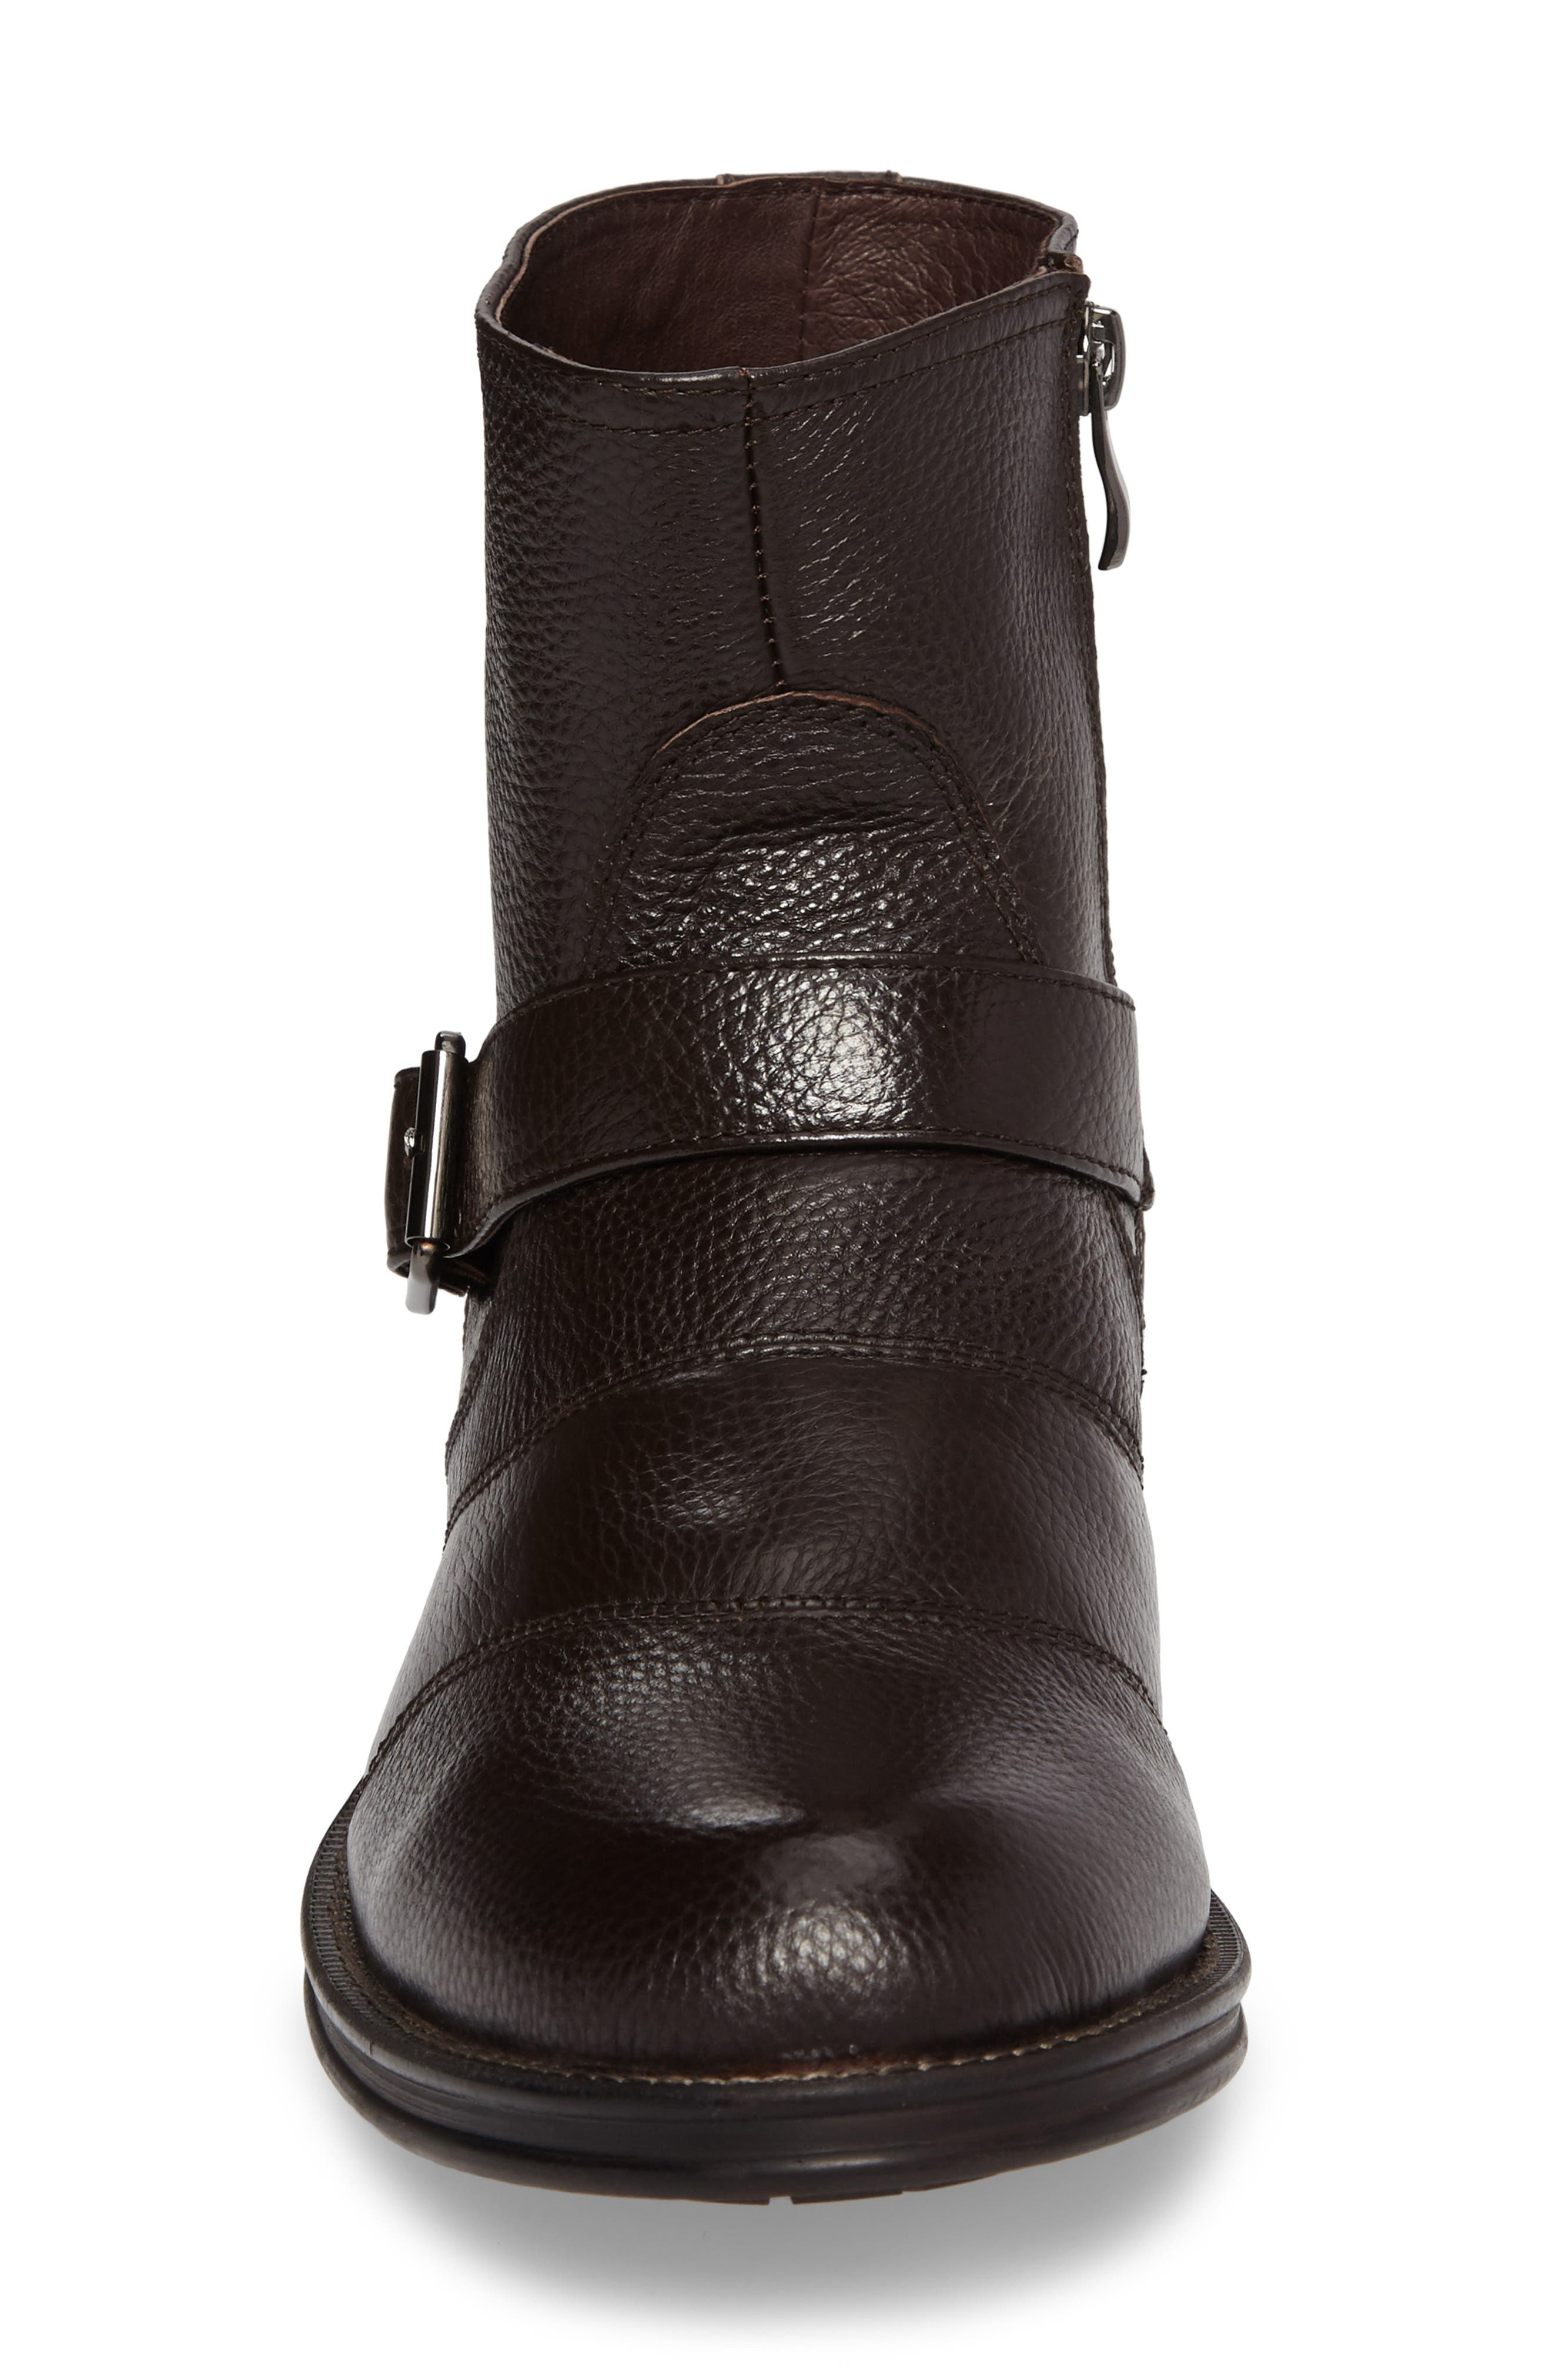 Howson Buckle Strap Boot,                             Alternate thumbnail 4, color,                             Brown Leather